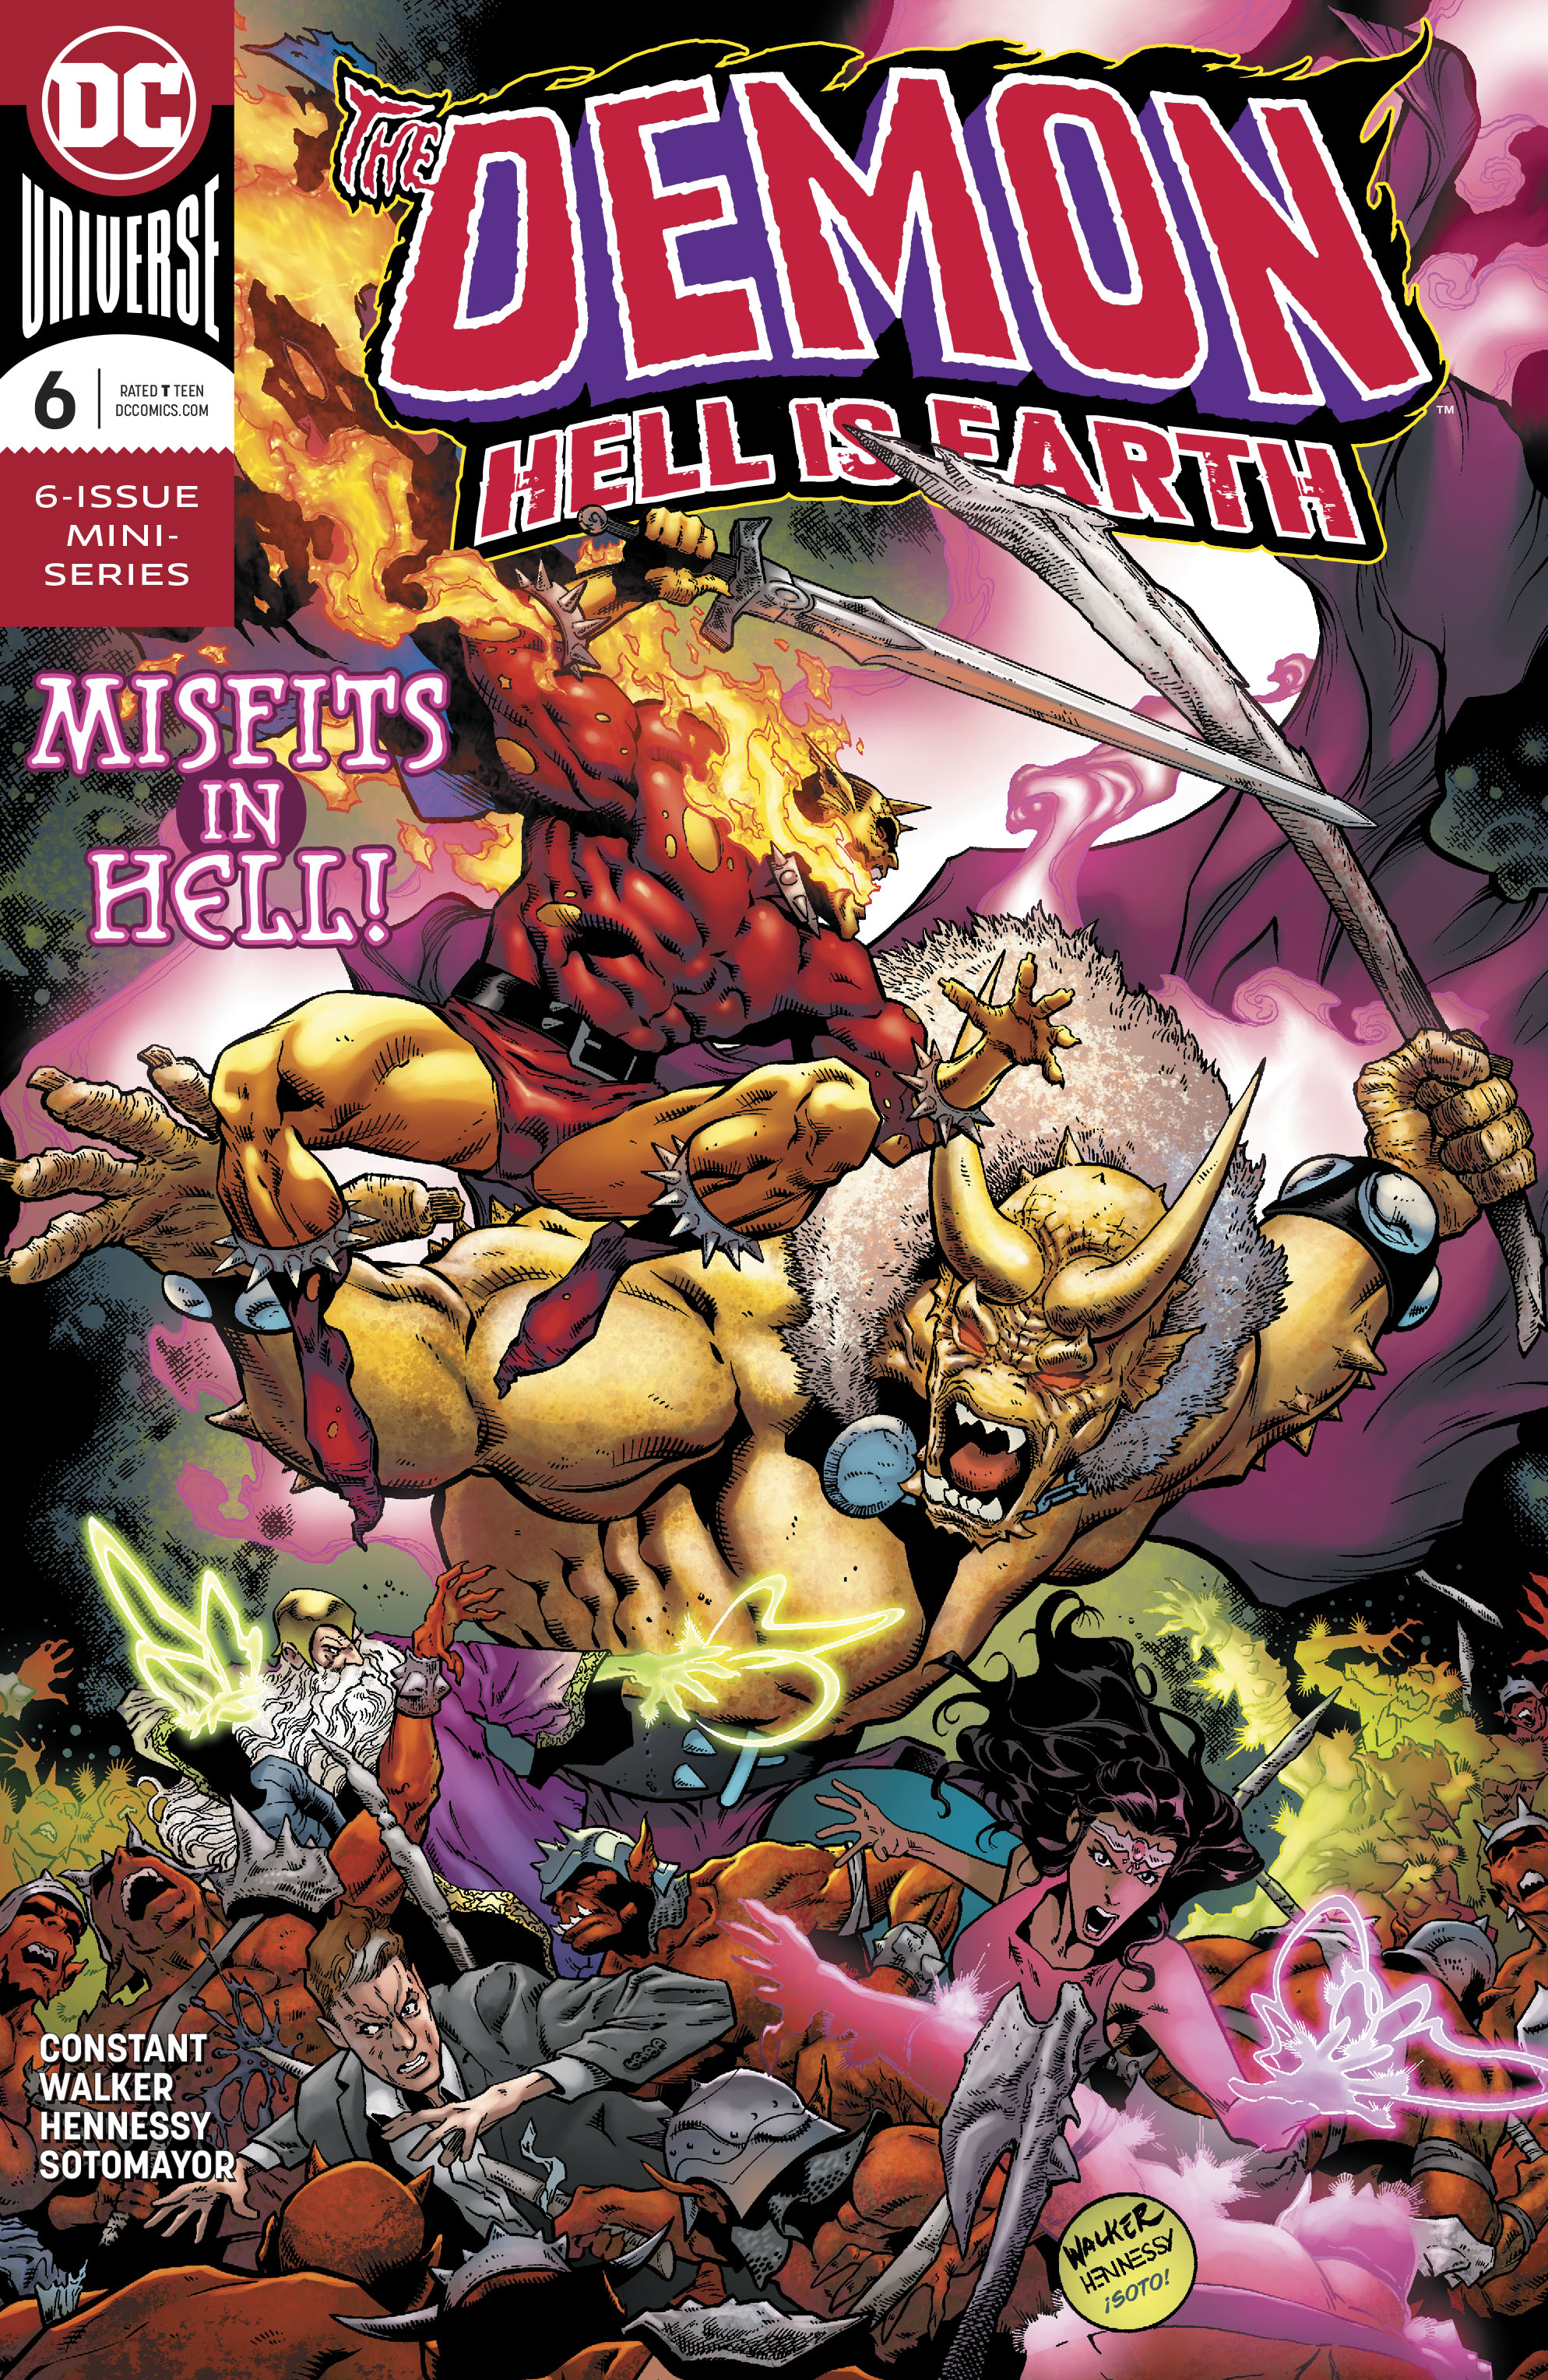 DEMON HELL IS EARTH #6 (OF 6)